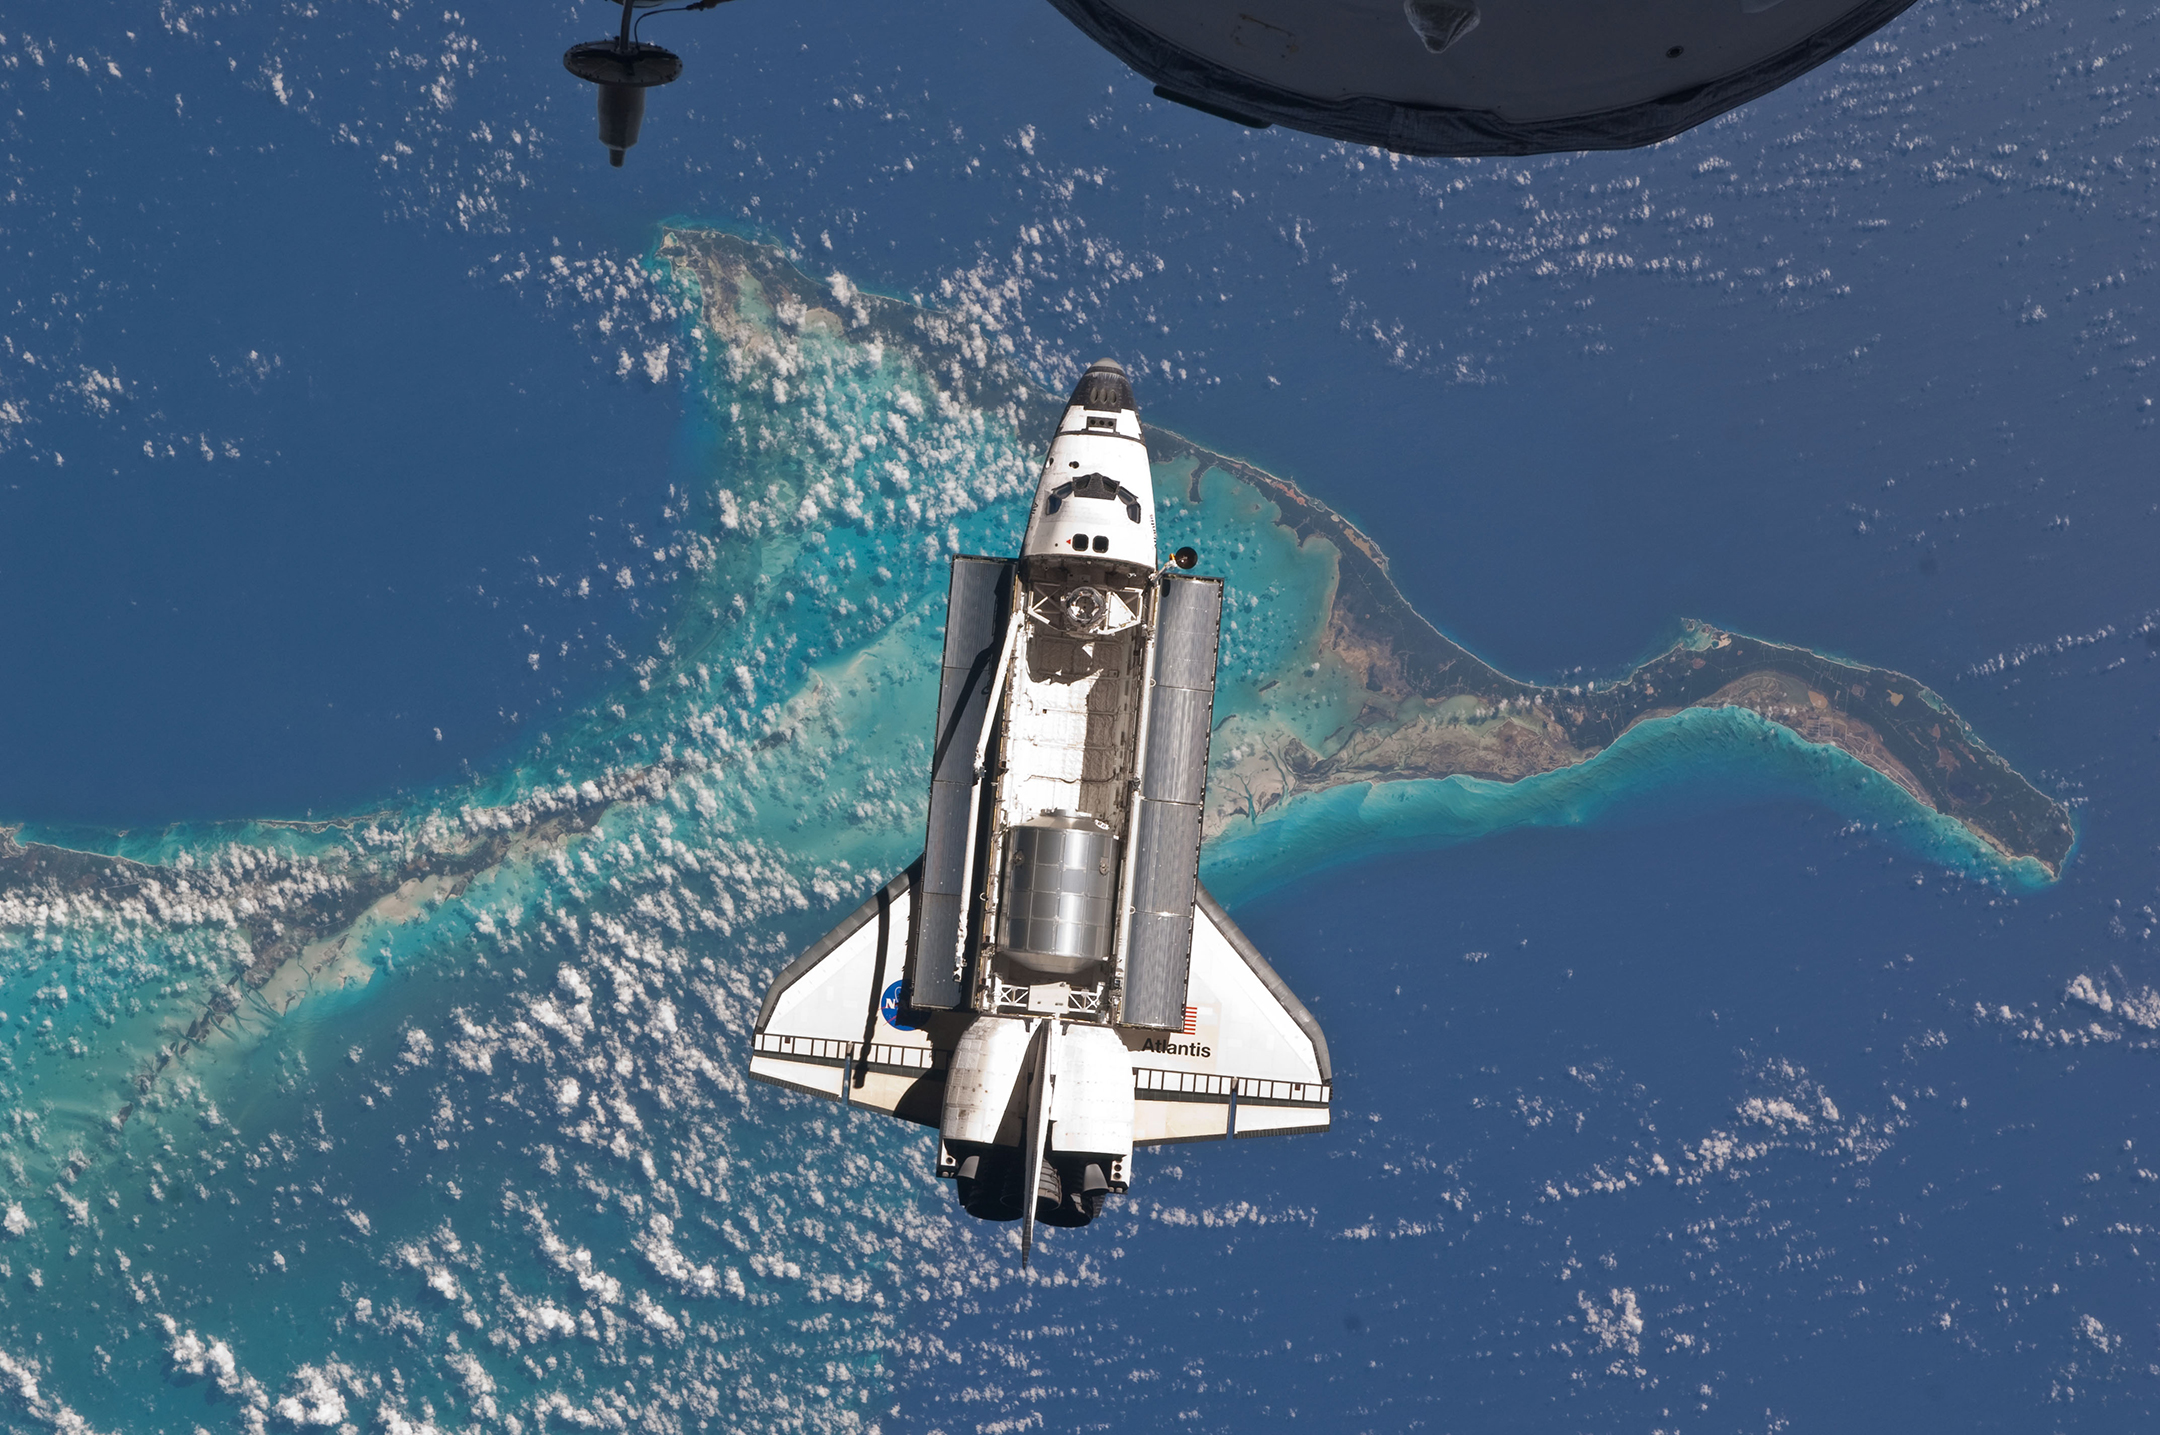 photo of space shuttle in orbit around the earth with its payload bay doors open